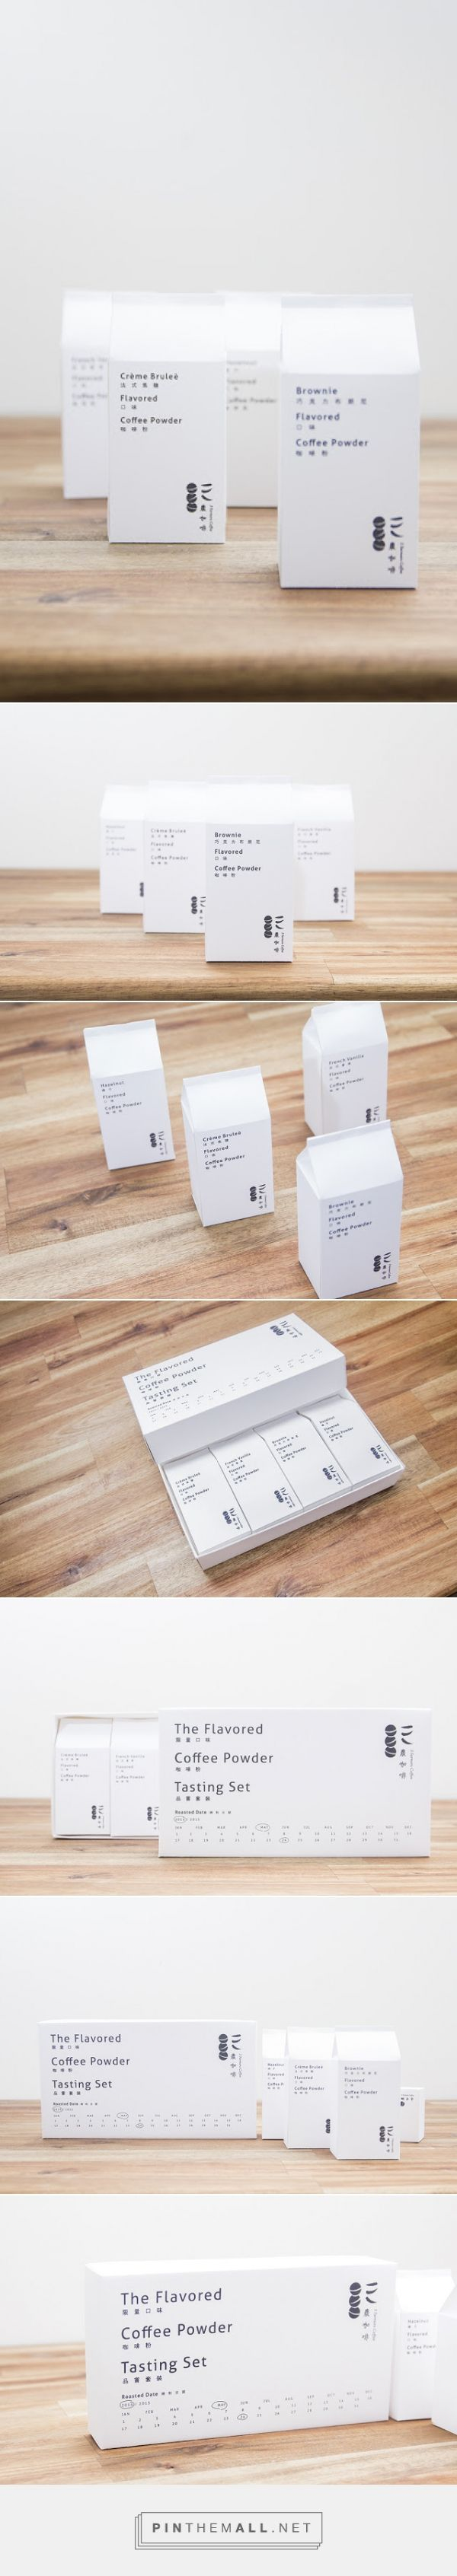 3 Farmers Coffee (Concept)         on          Packaging of the World - Creative Package Design Gallery - created via http://pinthemall.net